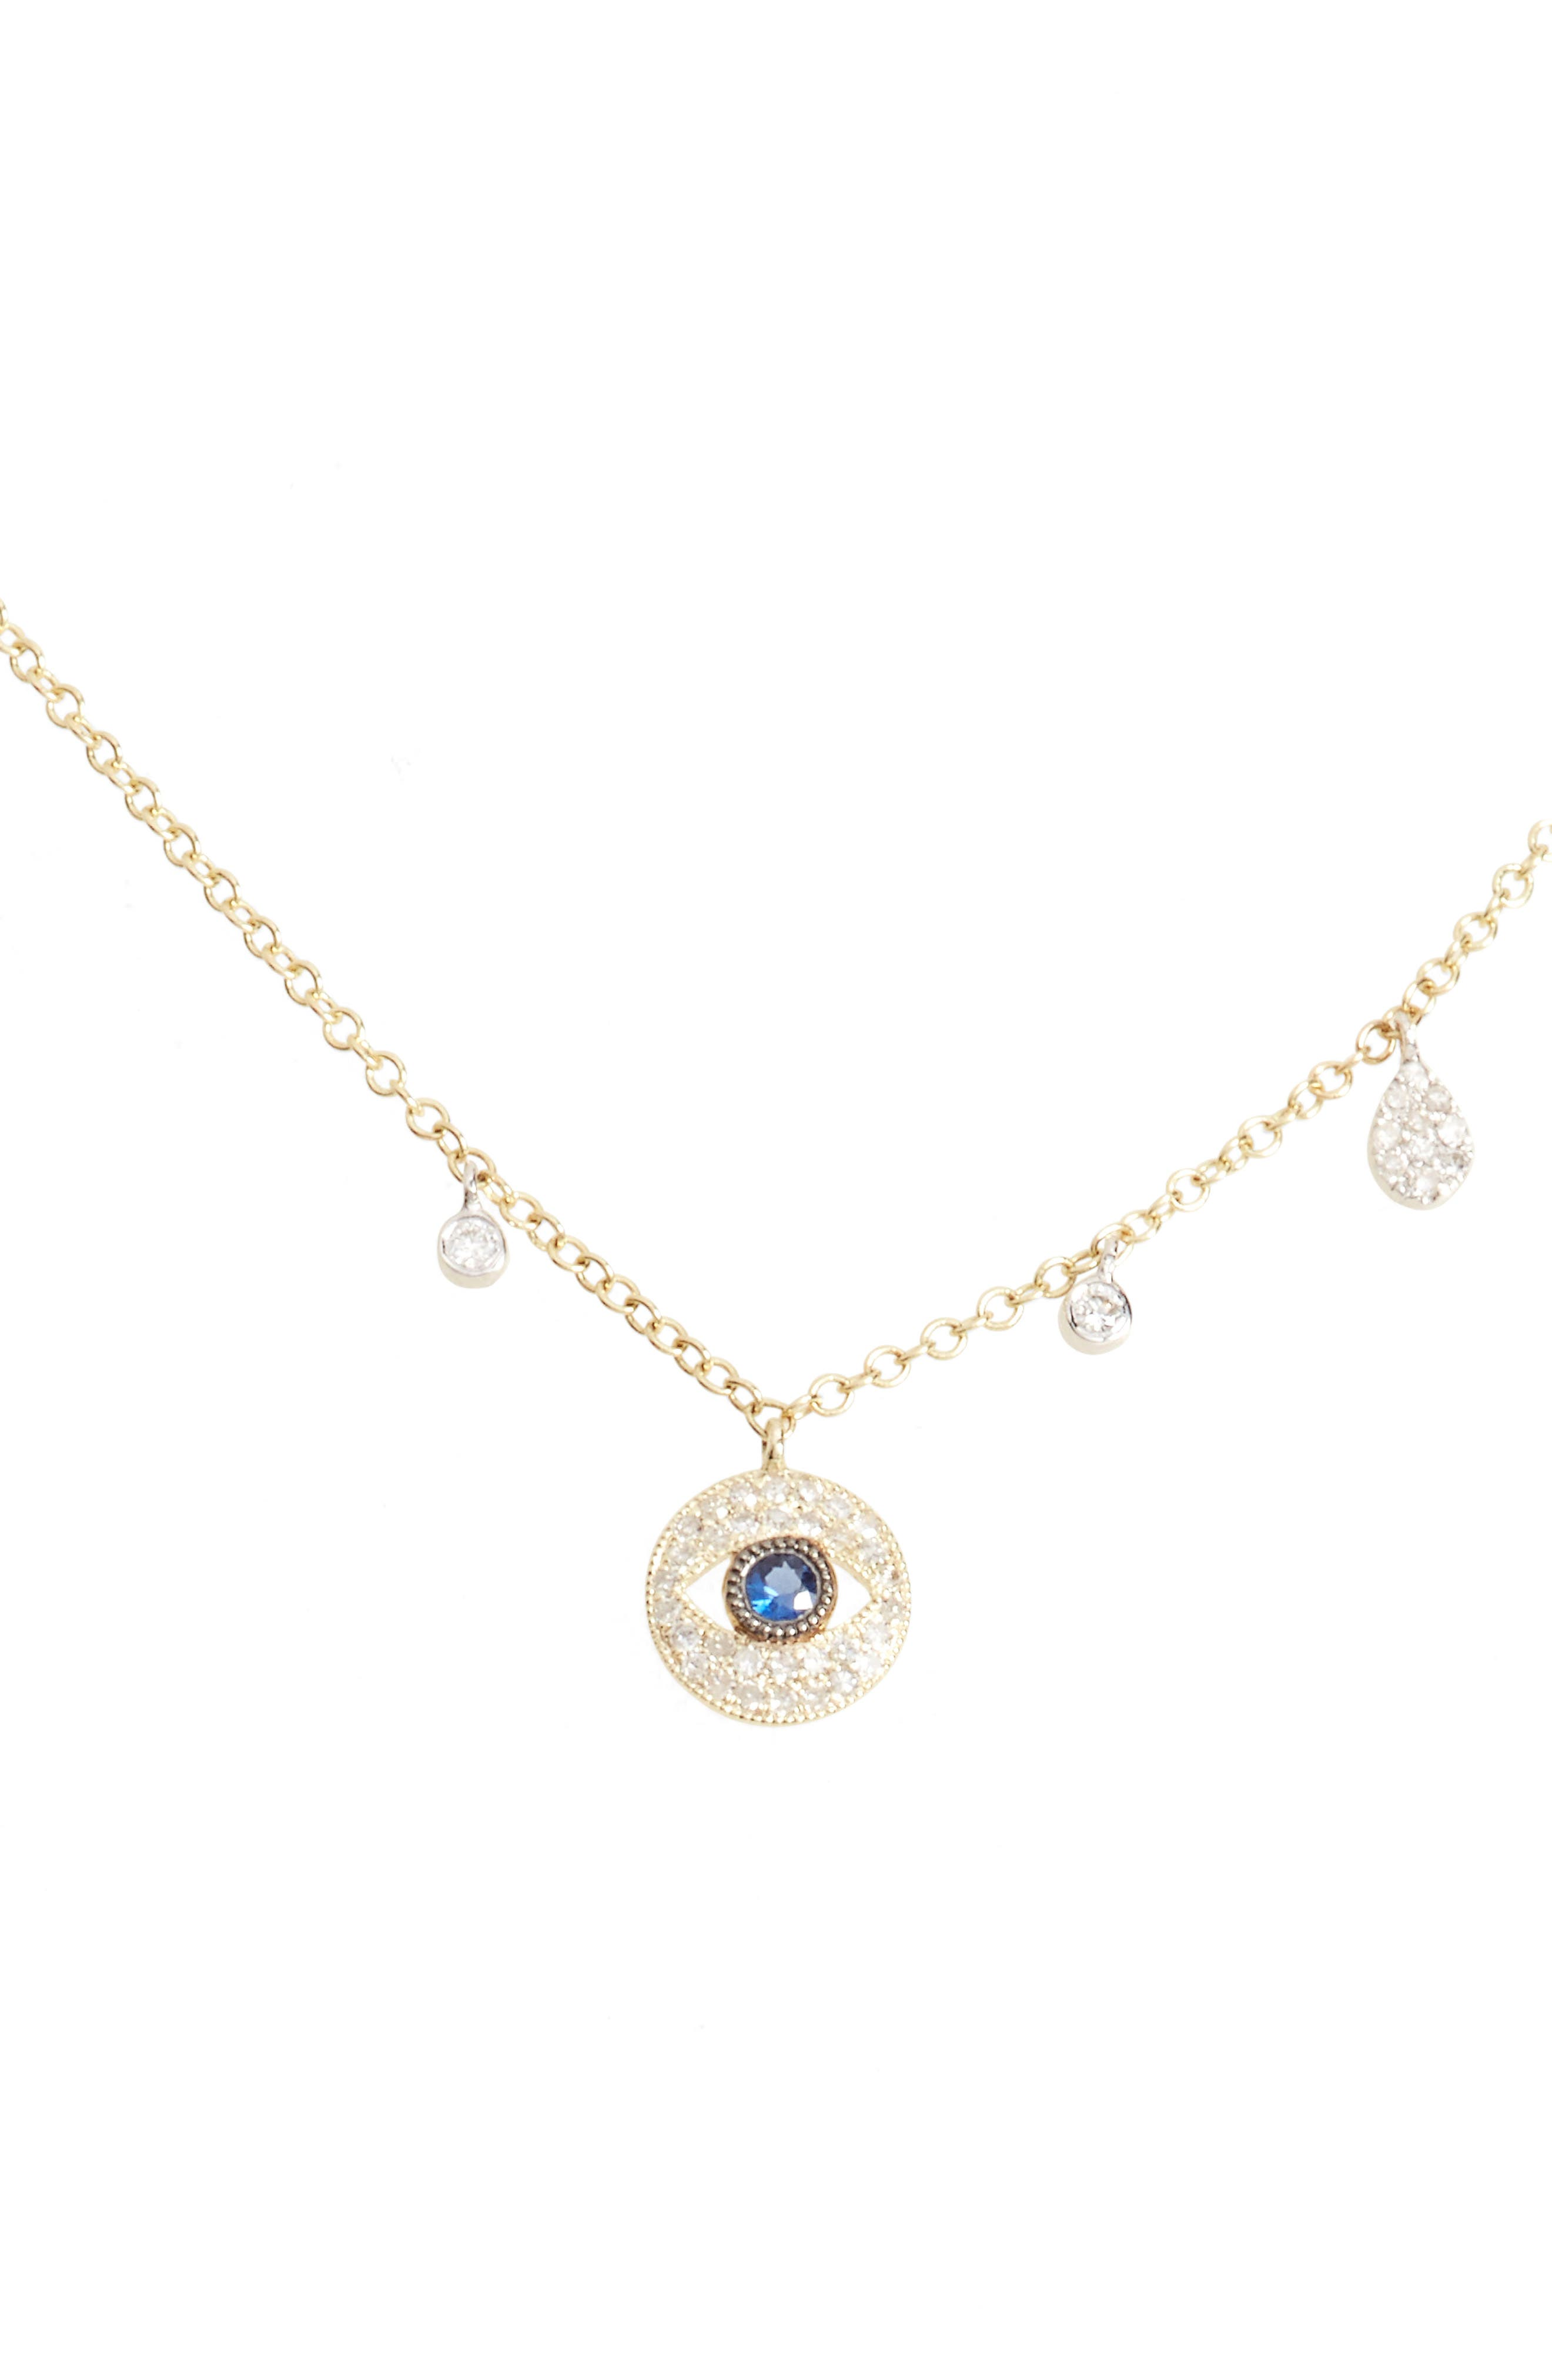 Diamond & Sapphire Evil Eye Pendant Necklace,                         Main,                         color, YELLOW GOLD